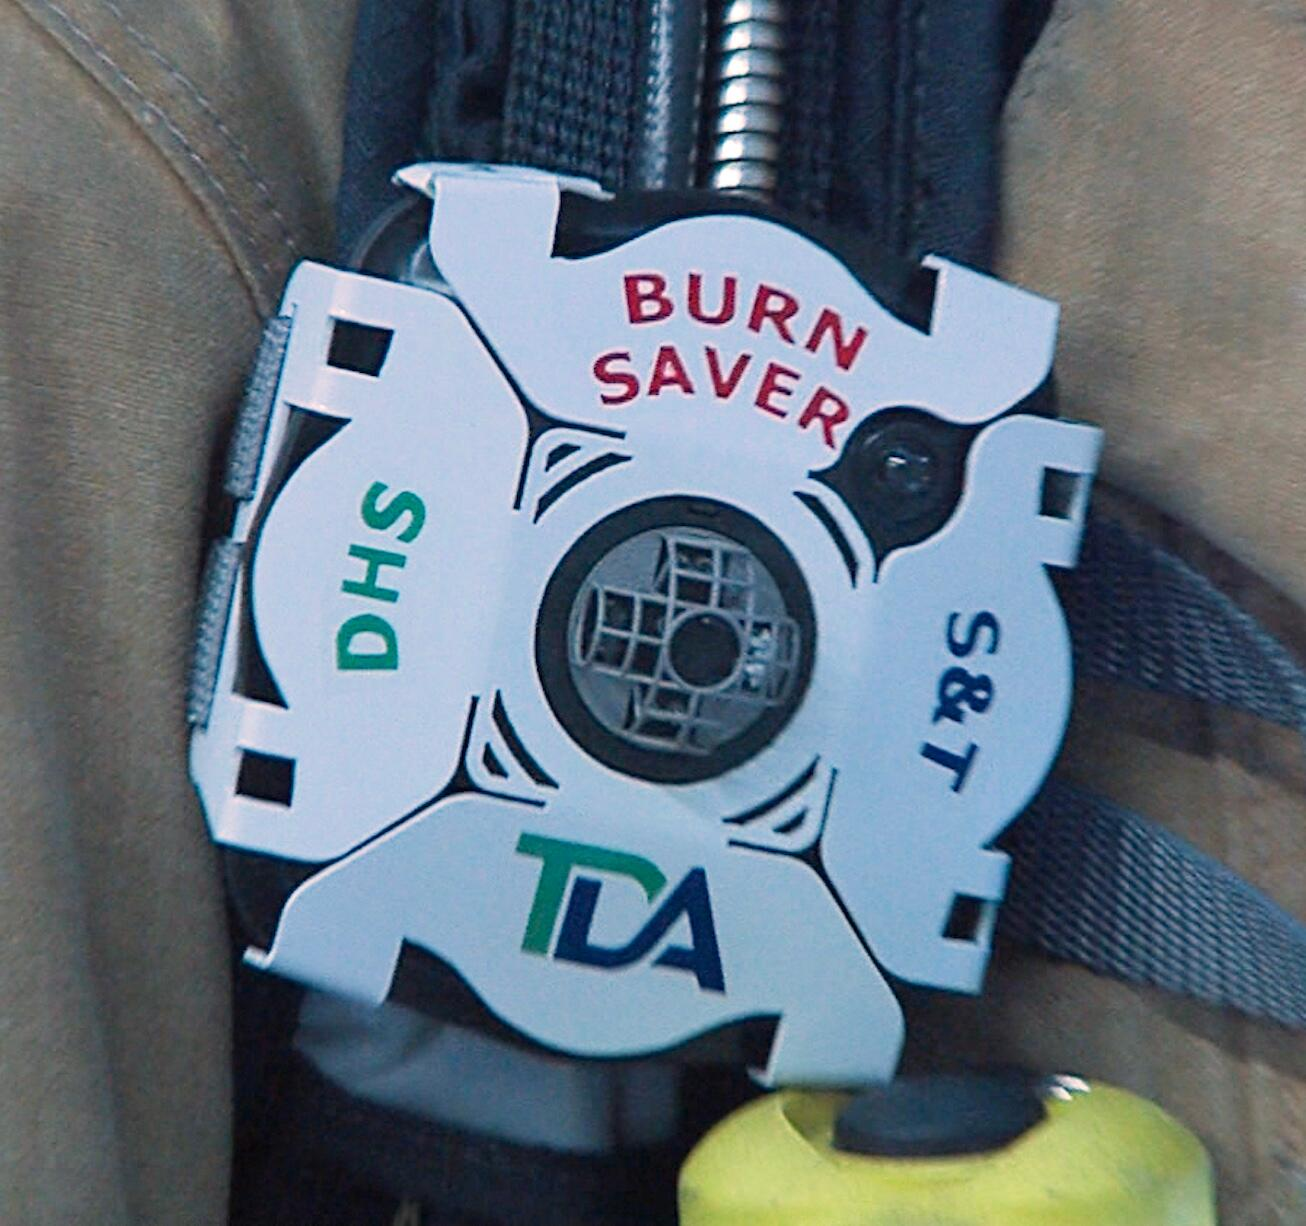 Burn Saver Device